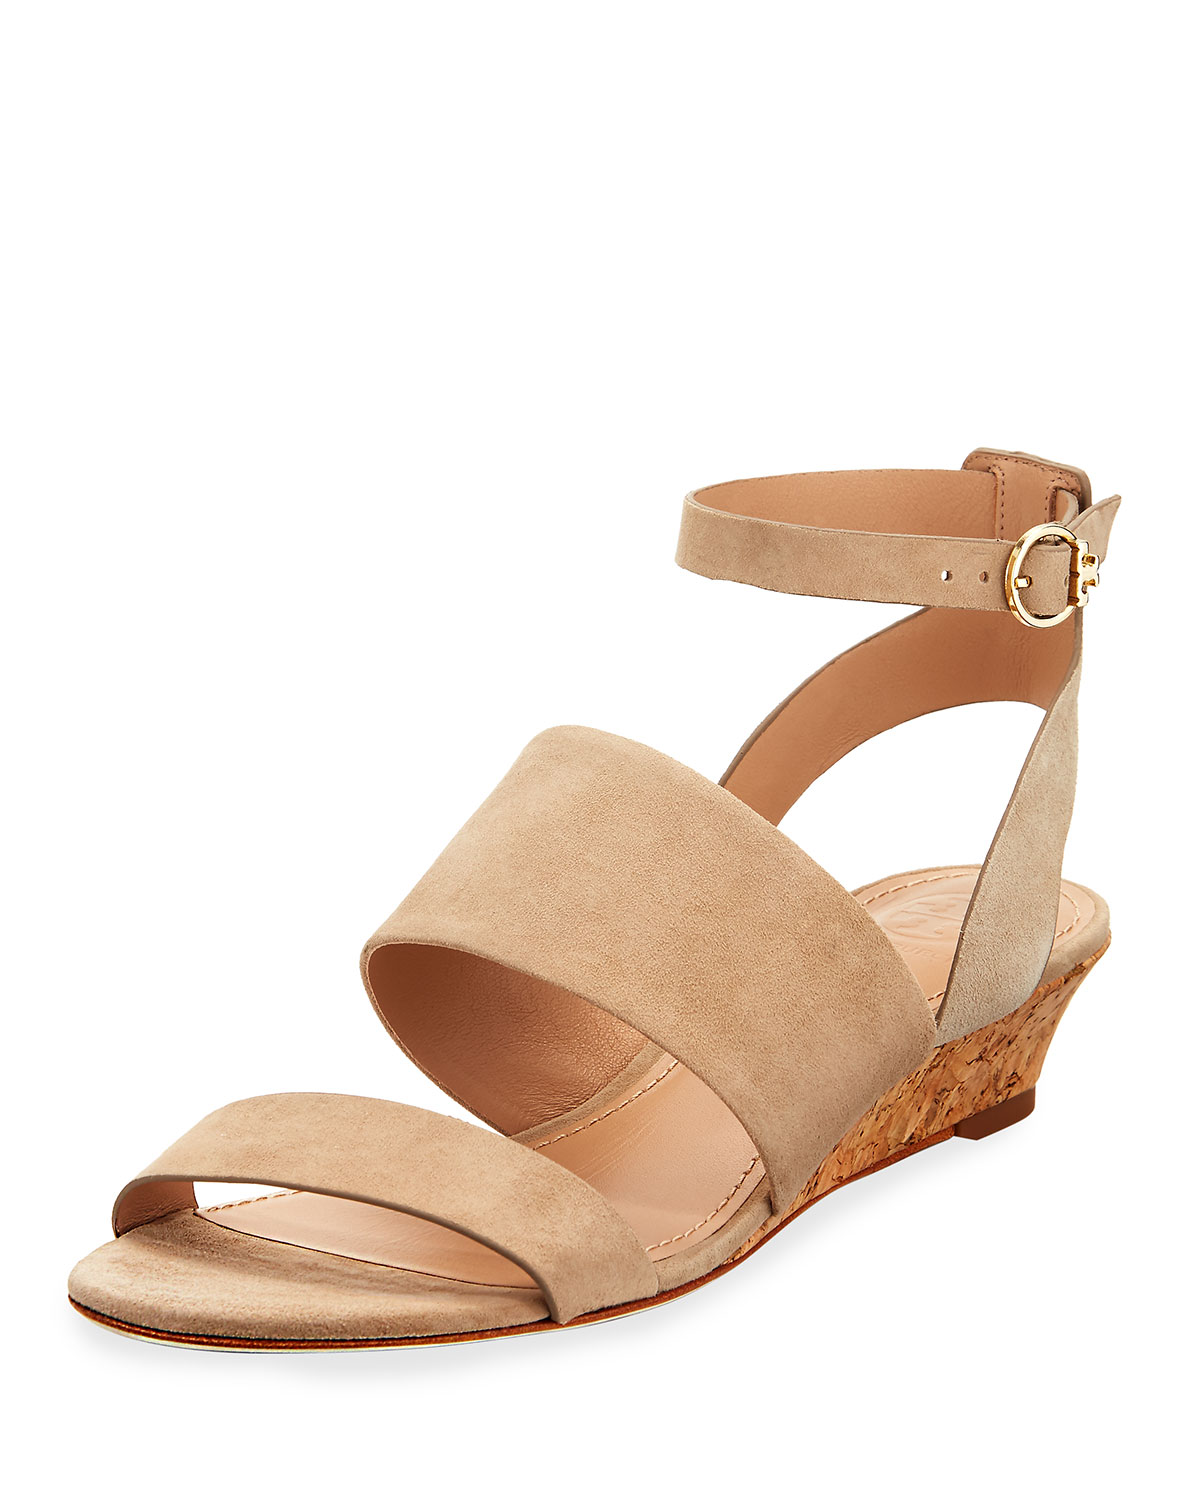 7c6a0456ead Tory Burch North Suede Low-Wedge Sandal